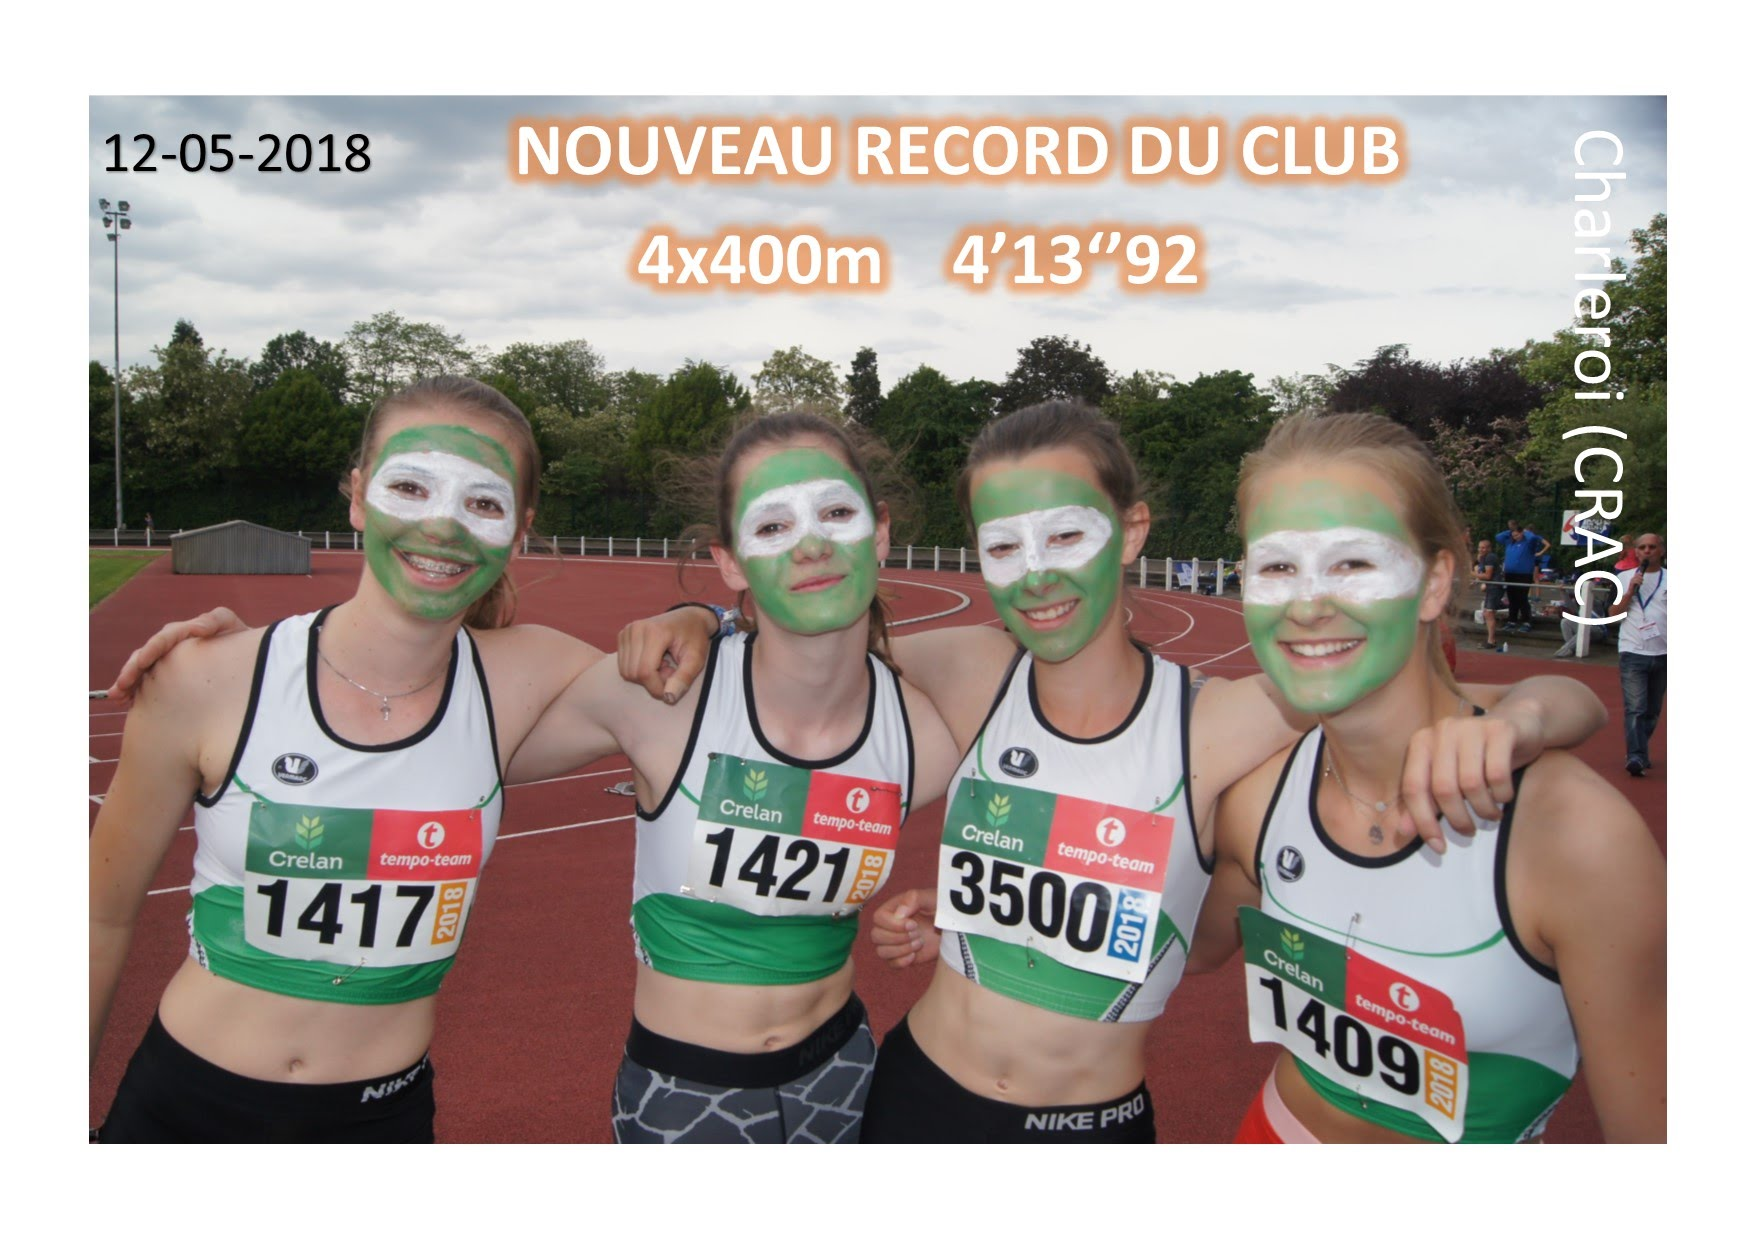 2018-5-12 RECORD Equipe 4x400m DAMES